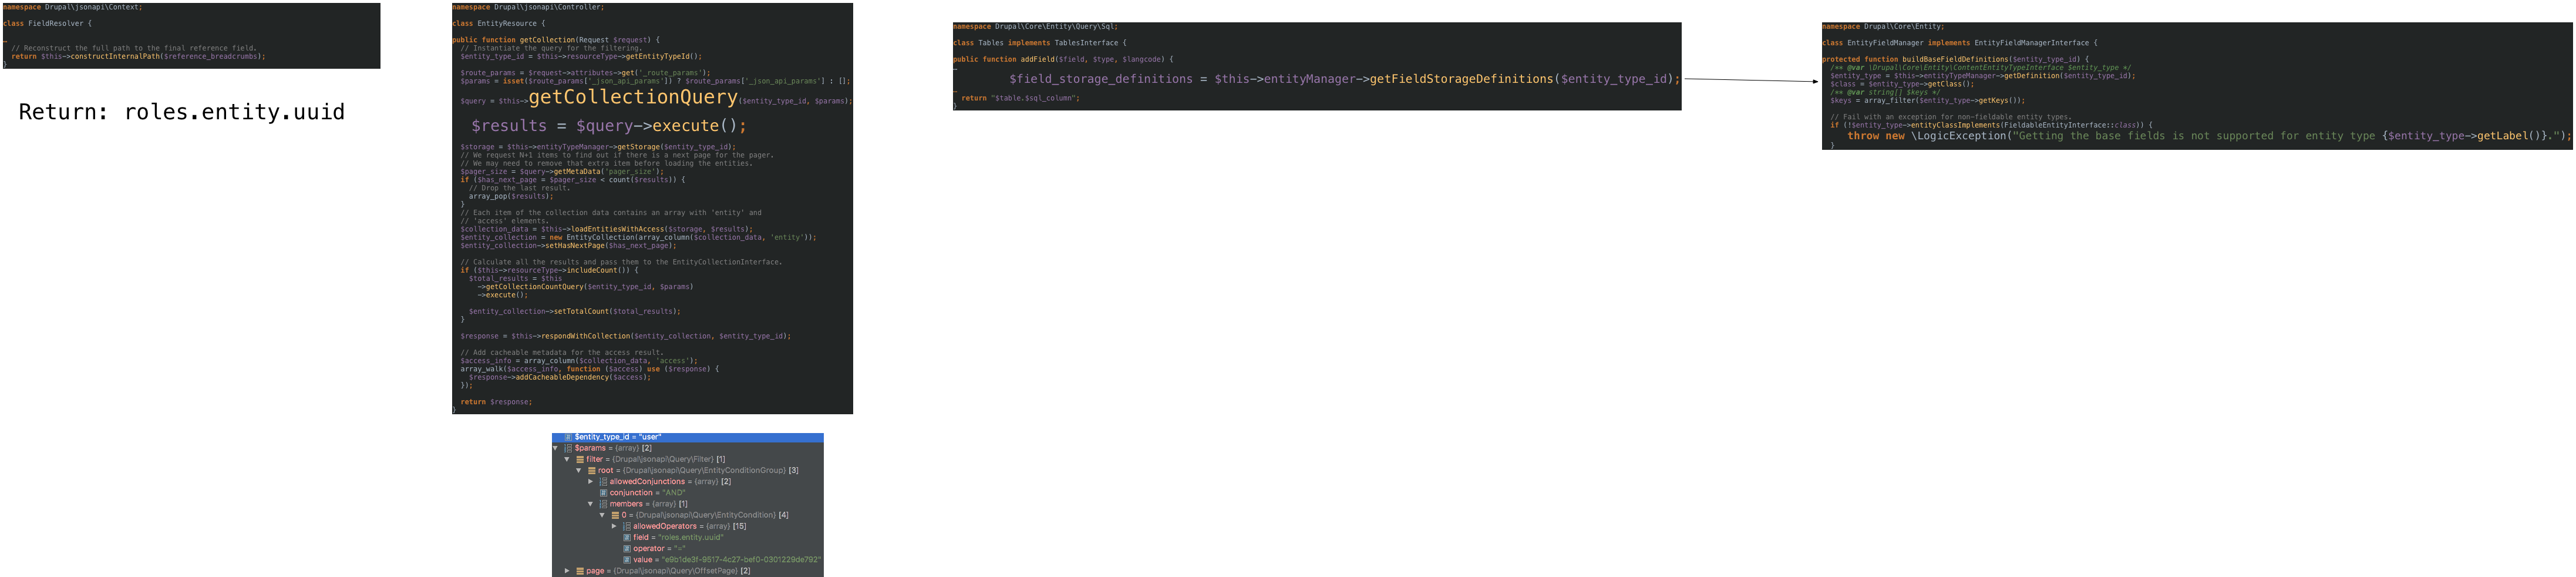 Entity querying config entities does not work, so neither does JSON